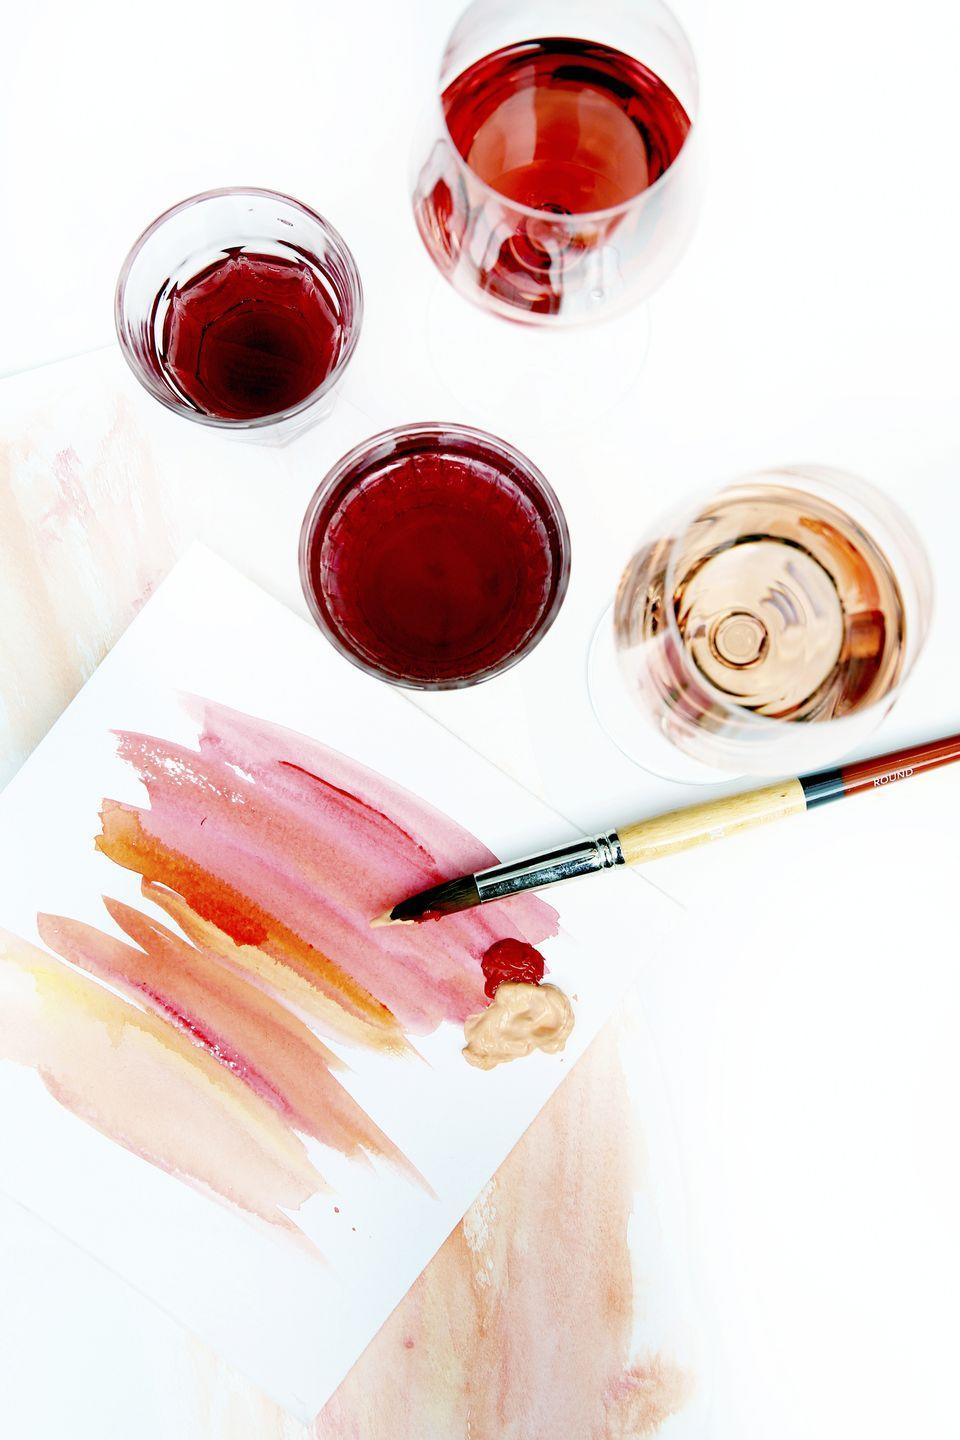 """<p><a href=""""https://www.wineandcanvas.com/"""" rel=""""nofollow noopener"""" target=""""_blank"""" data-ylk=""""slk:This unique experience"""" class=""""link rapid-noclick-resp"""">This unique experience</a> offers the perfect excuse to get boozy and crafty in the same stroke. Plus, you won't be going home alone. (If your local paint and sip studio is closed, you can also try one of Yaymaker's <a href=""""https://www.yaymaker.com/virtual/experience/101/?irclickid=ToYWhpzMbxyLTth07OwzdzZ-UkEyOxTxIzSbQ00&irgwc=1&utm_campaign=Skimbit%20Ltd.&sharedid=oprahmag.com&utm_medium=affiliate&utm_source=ignite"""" rel=""""nofollow noopener"""" target=""""_blank"""" data-ylk=""""slk:virtual paint nights"""" class=""""link rapid-noclick-resp"""">virtual paint nights</a>.)</p>"""